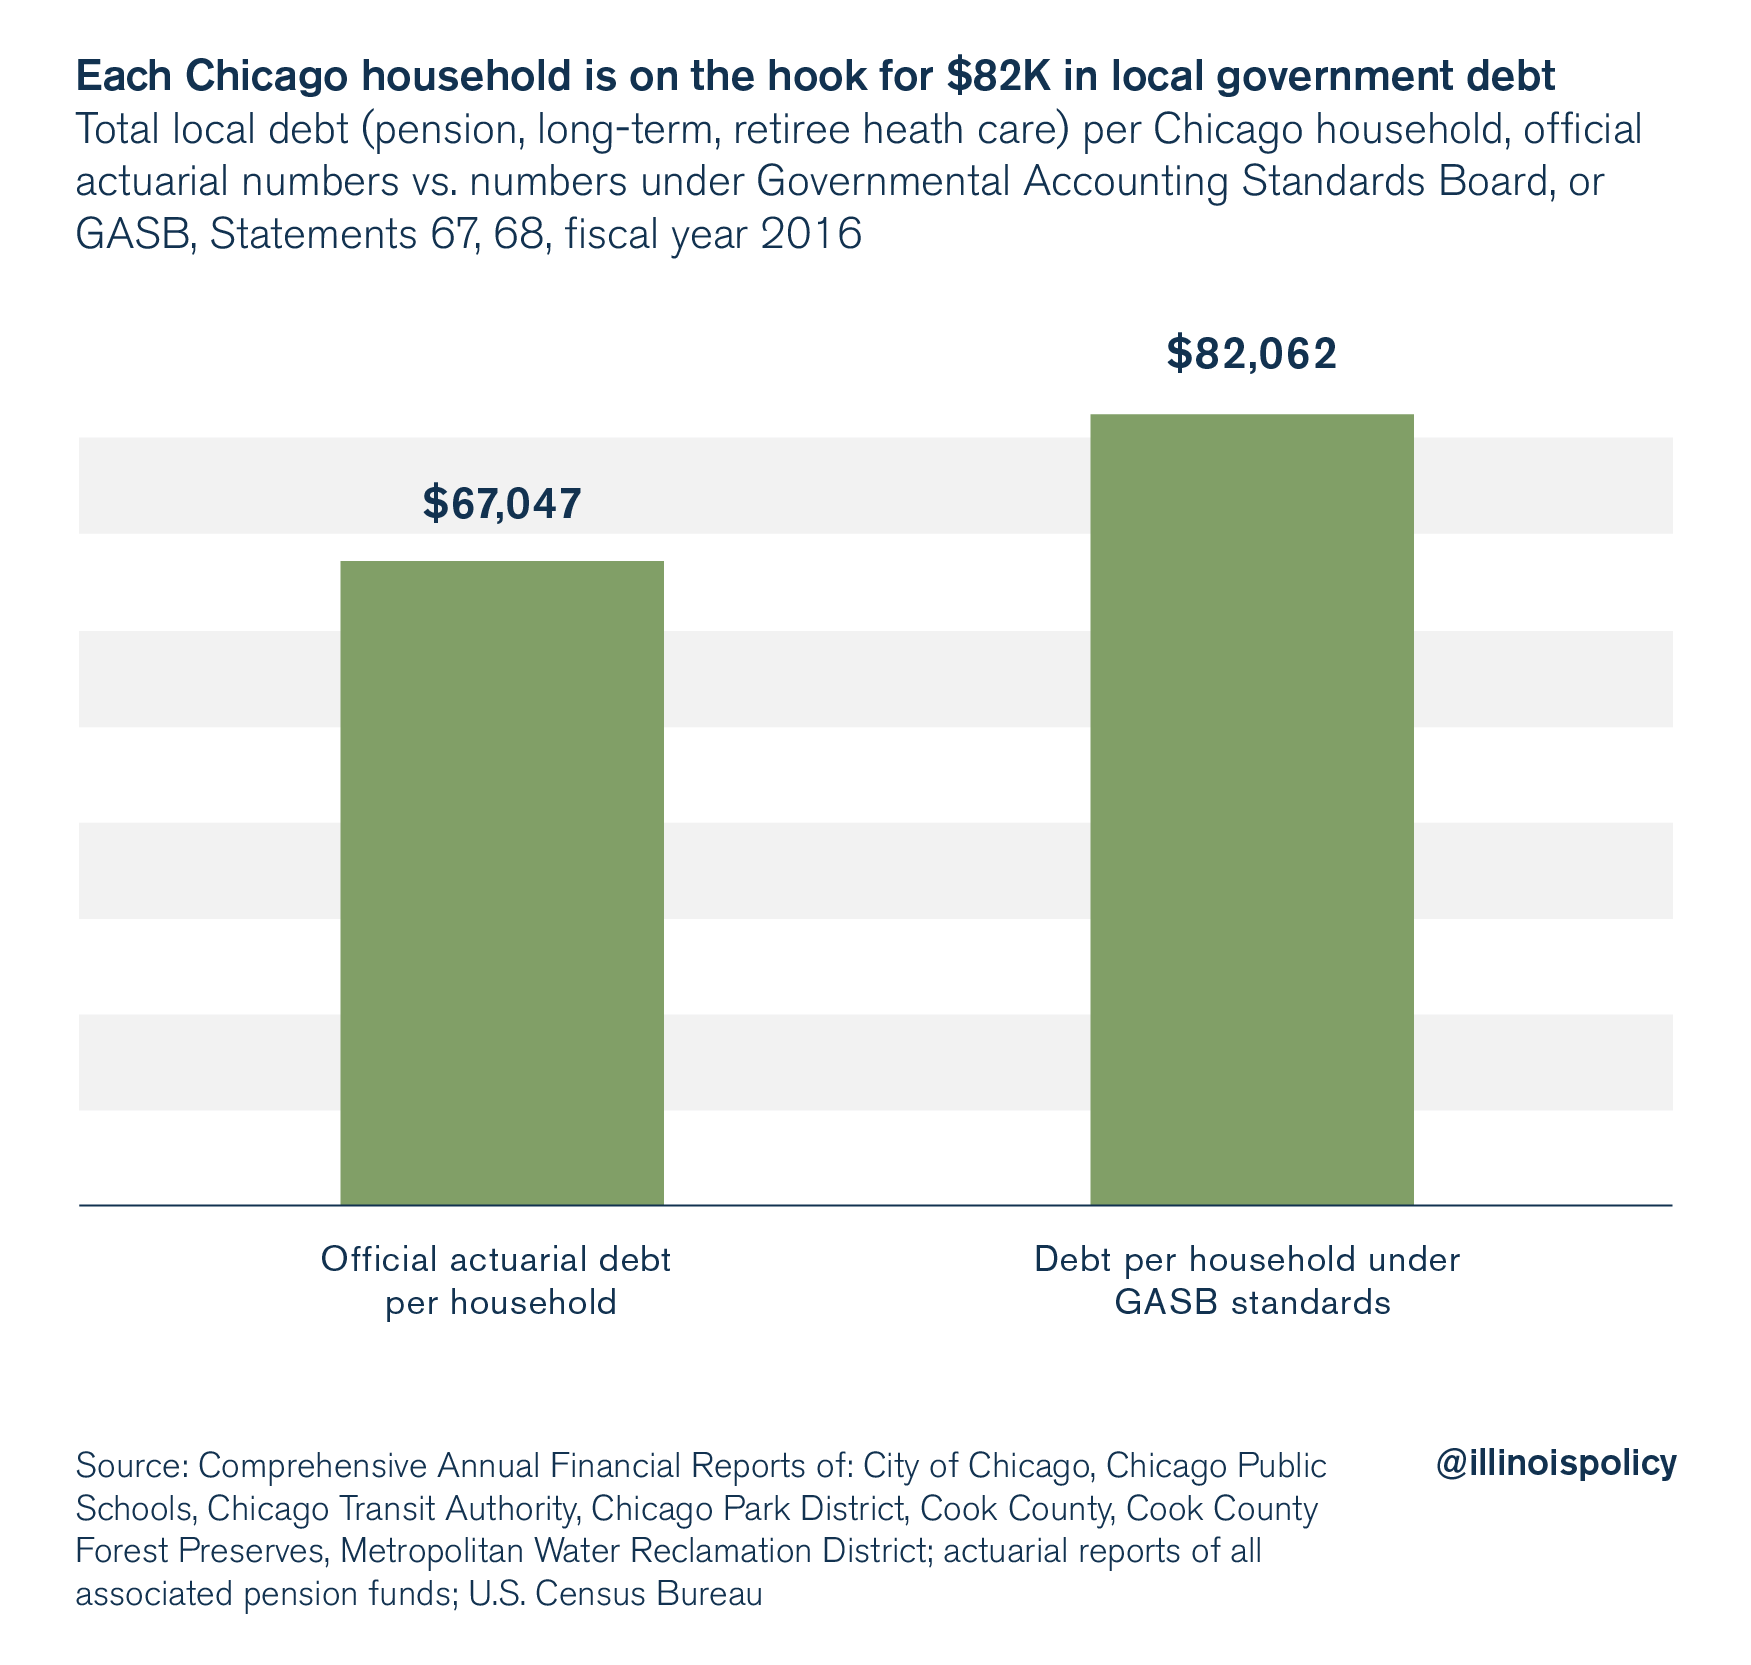 Chicago local government debt